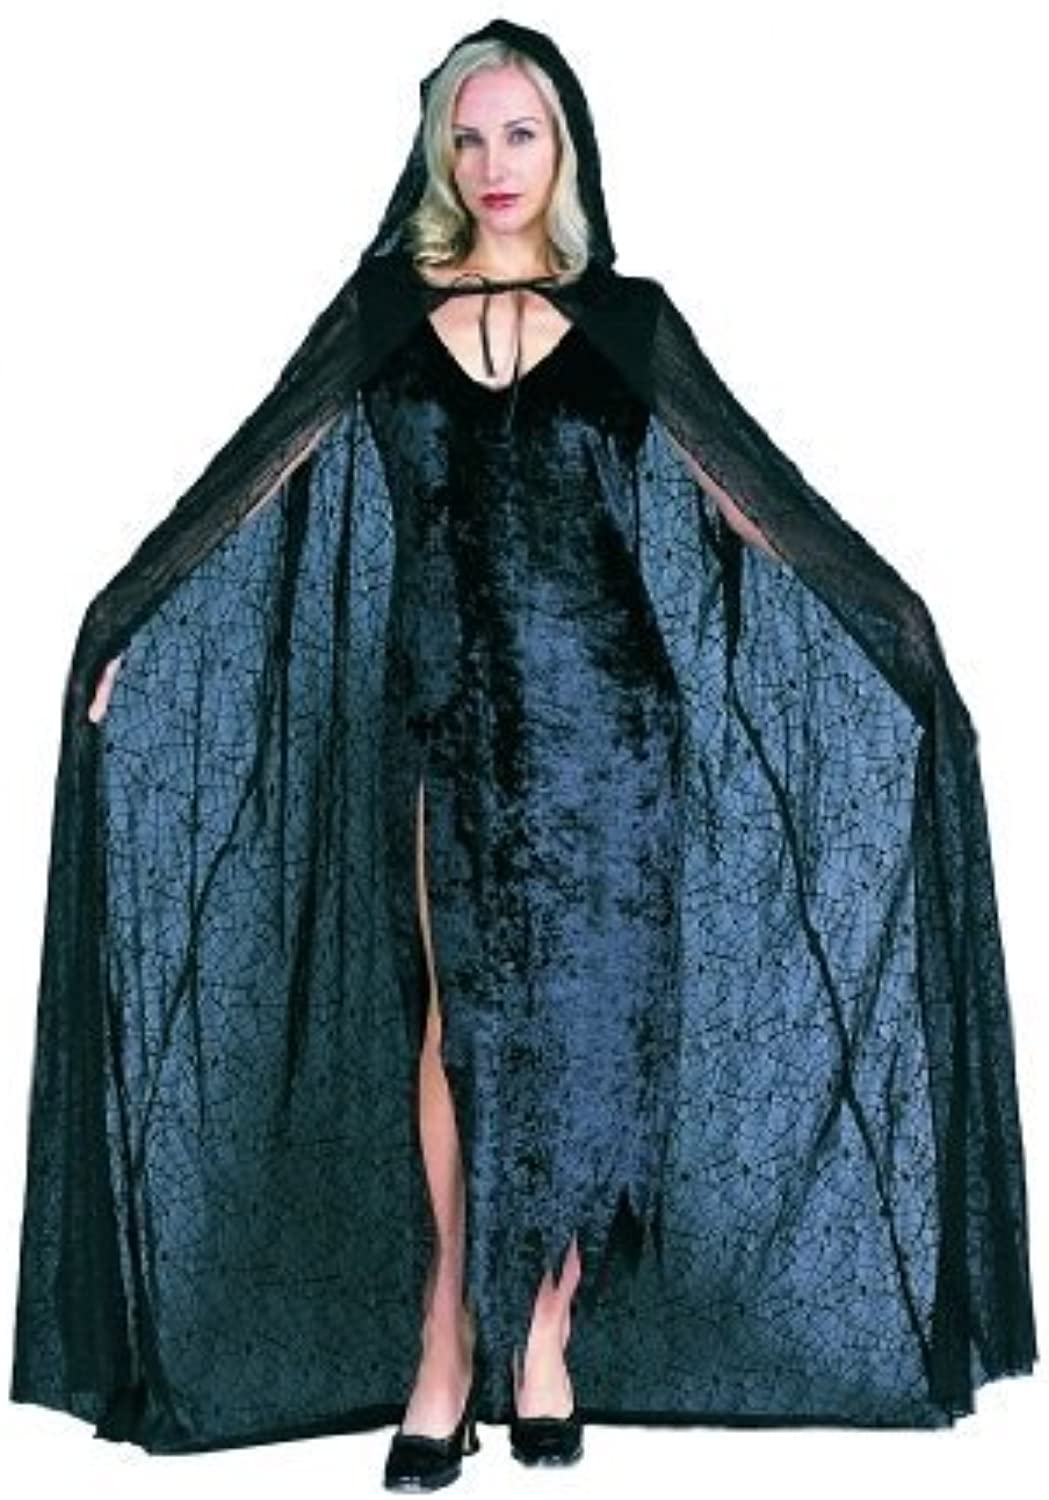 RG Costumes Spiderweb 56  Hooded Cape, Standard One Size by RG Costumes